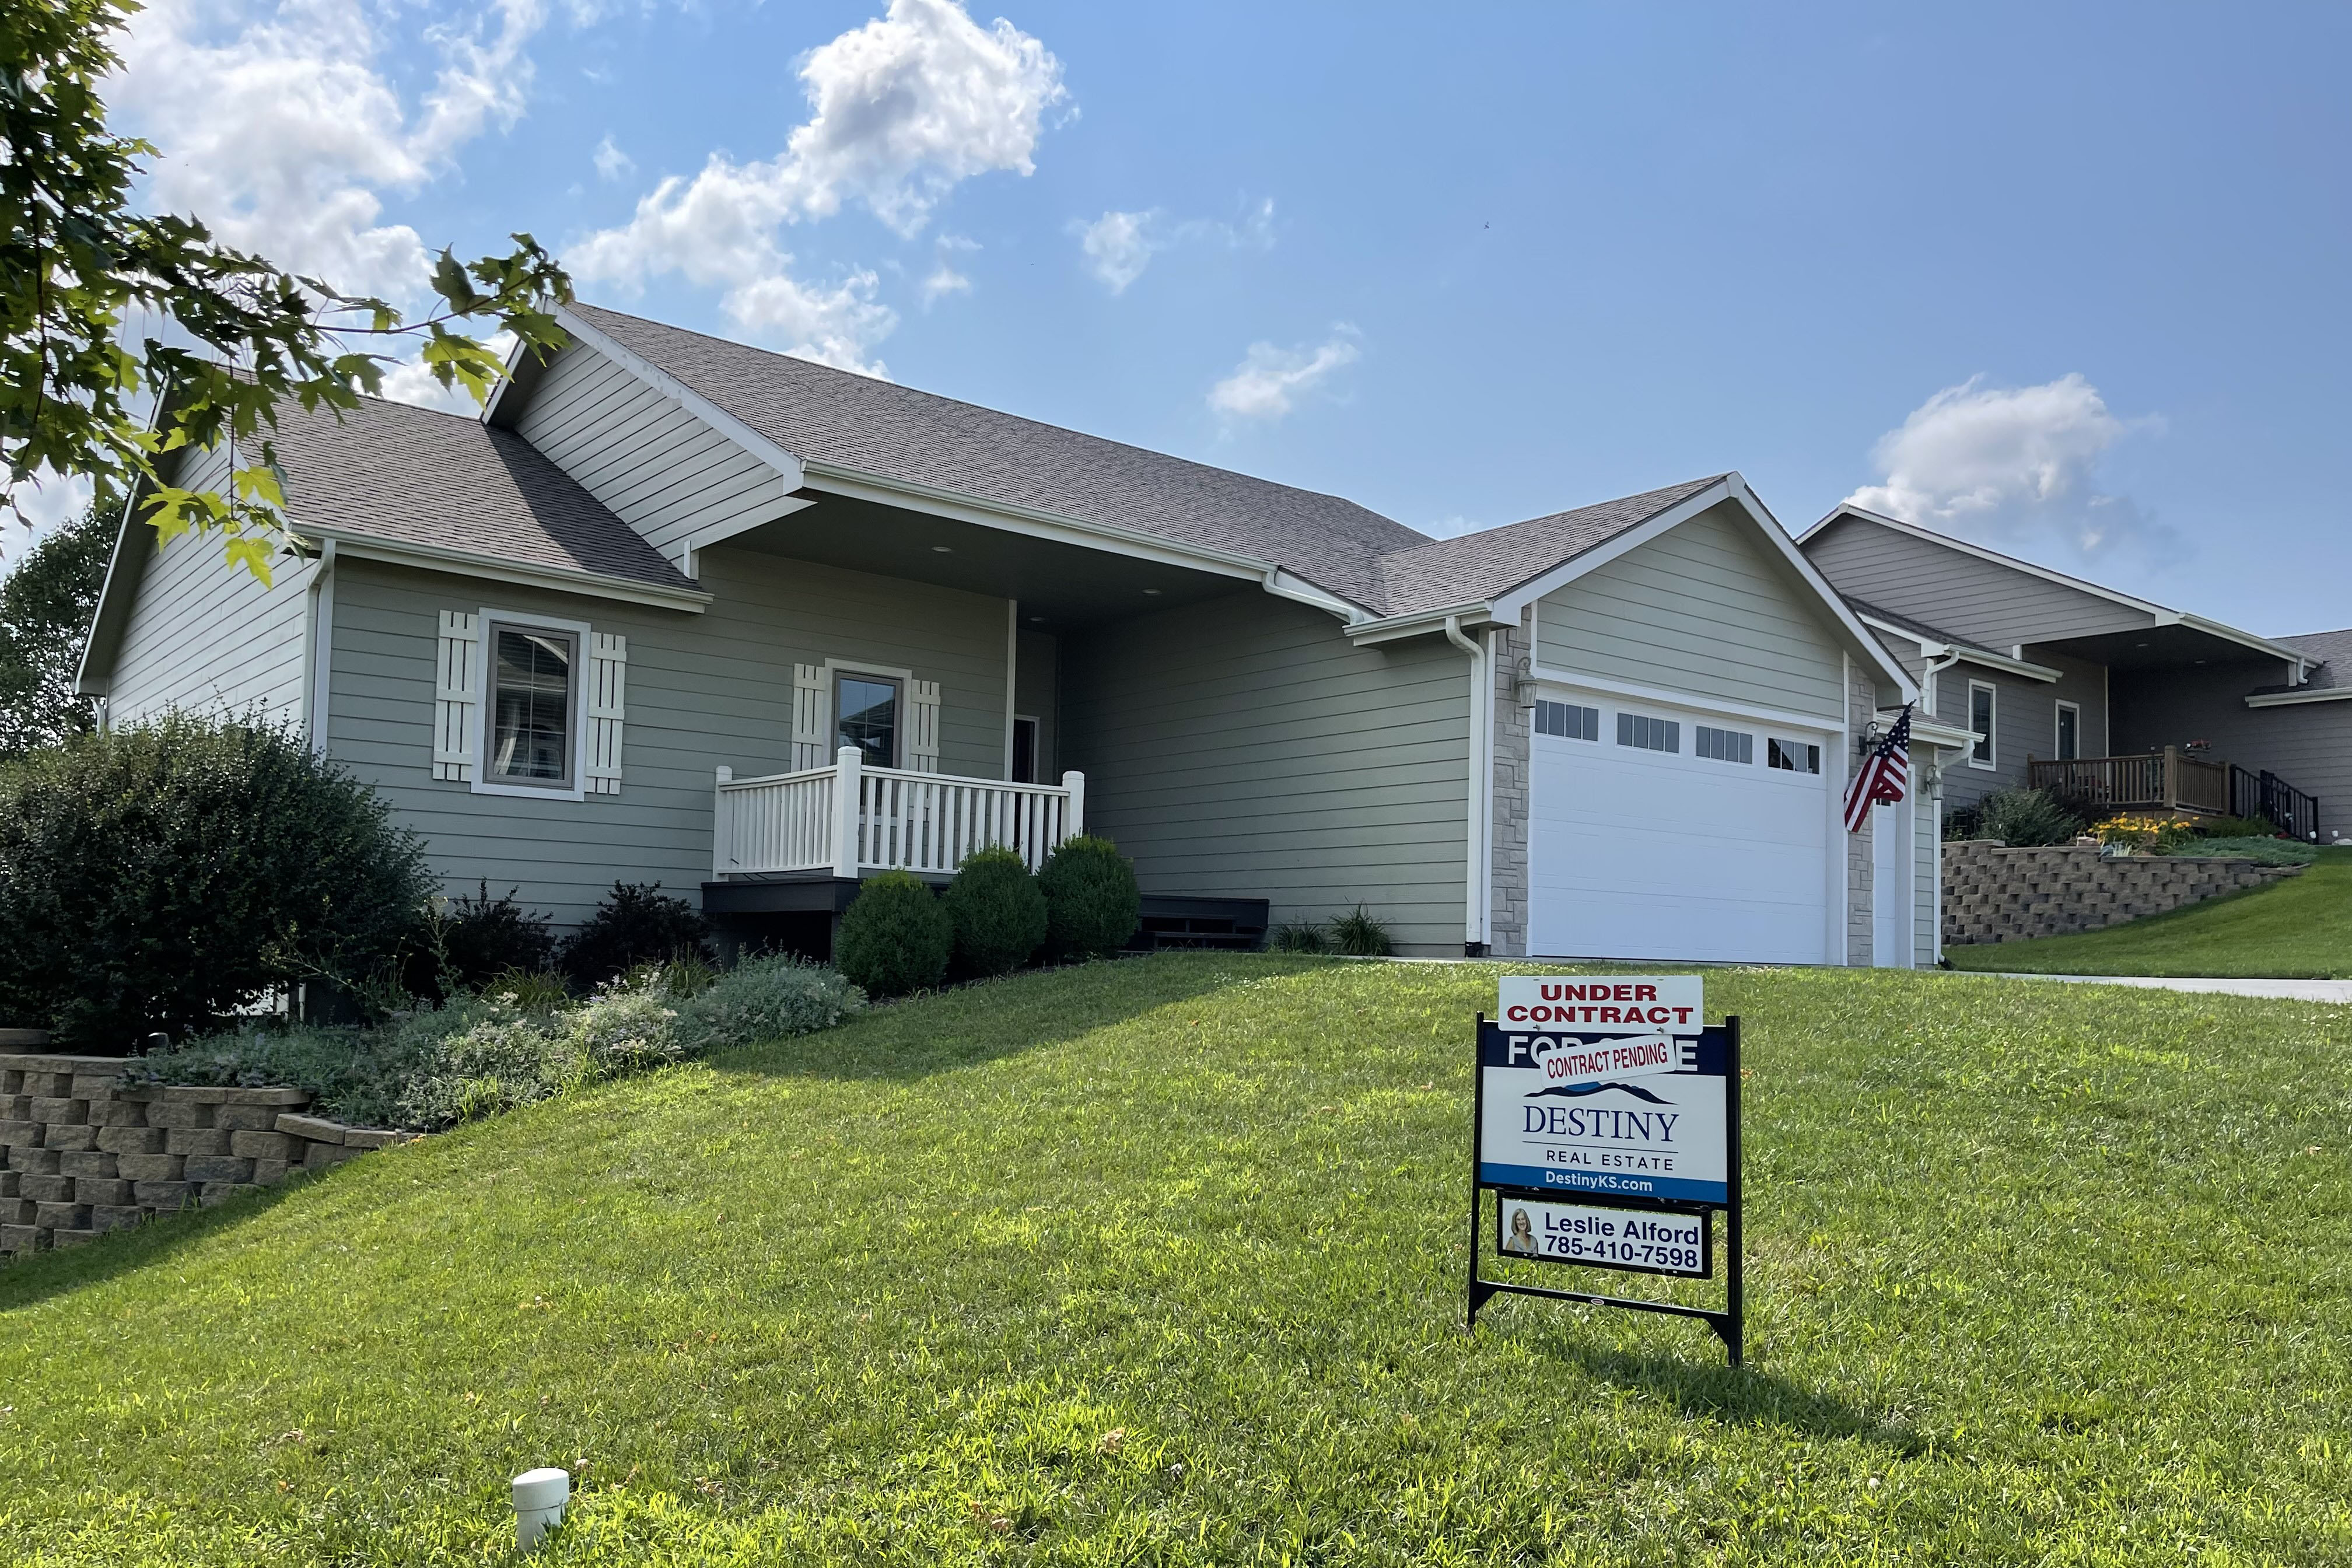 """Caption: Real estate agent Leslie Alford said the housing market near Ft. Riley, Kansas has been """"crazy"""" this year,"""" with """"a whole lot less houses for sale, a whole lot more competition for them, and higher prices."""", Credit: Courtesy Leslie Alford"""